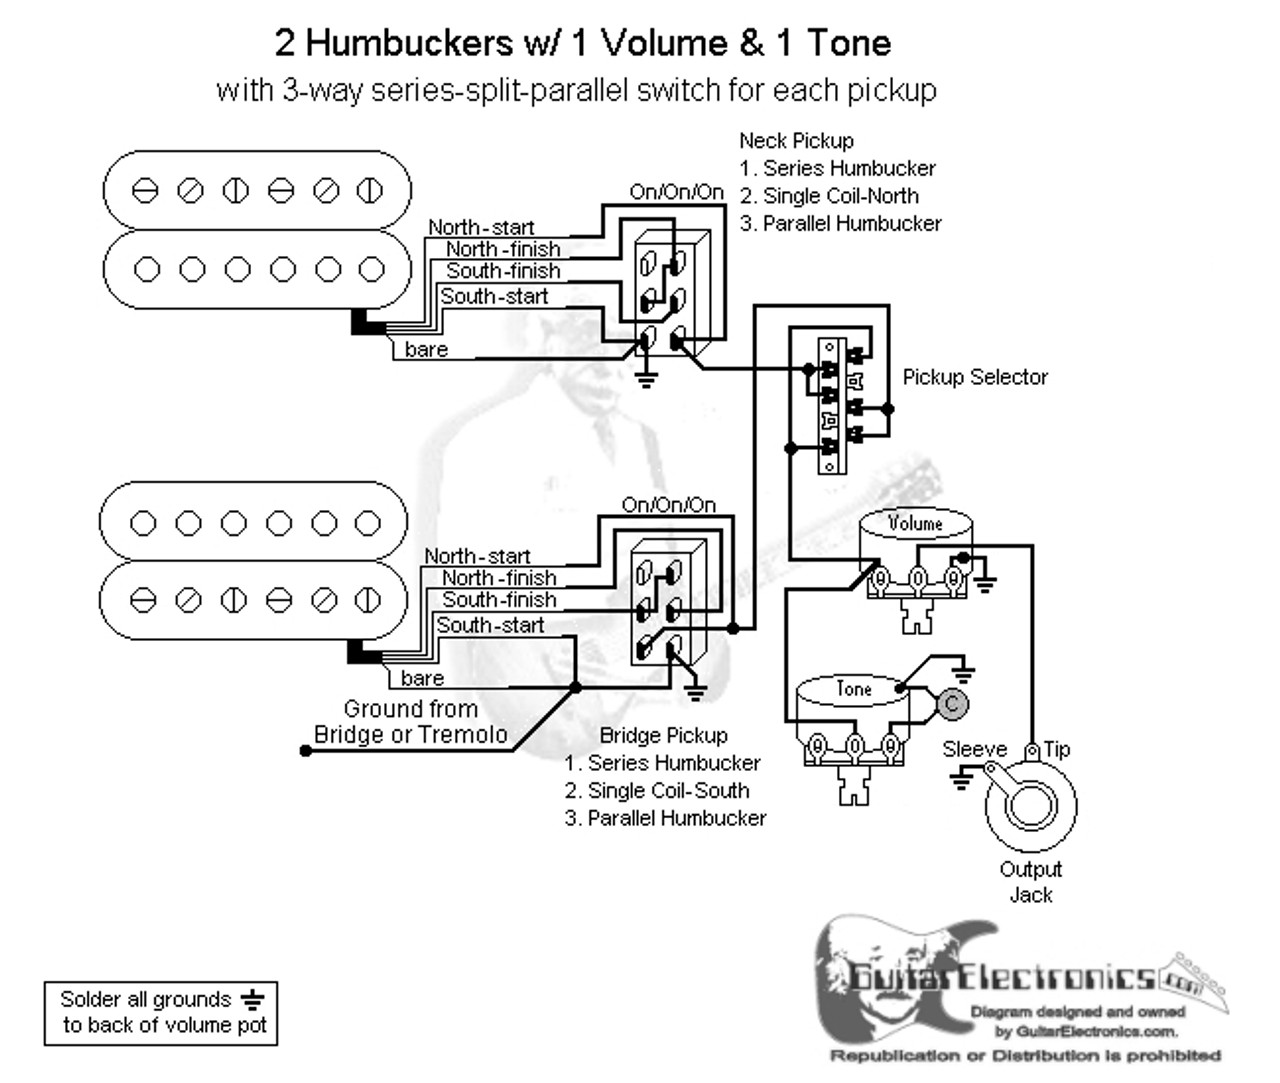 Wiring Diagram 2 Humbuckers 3way Toggle Switch 2 Volumes 2 Tones